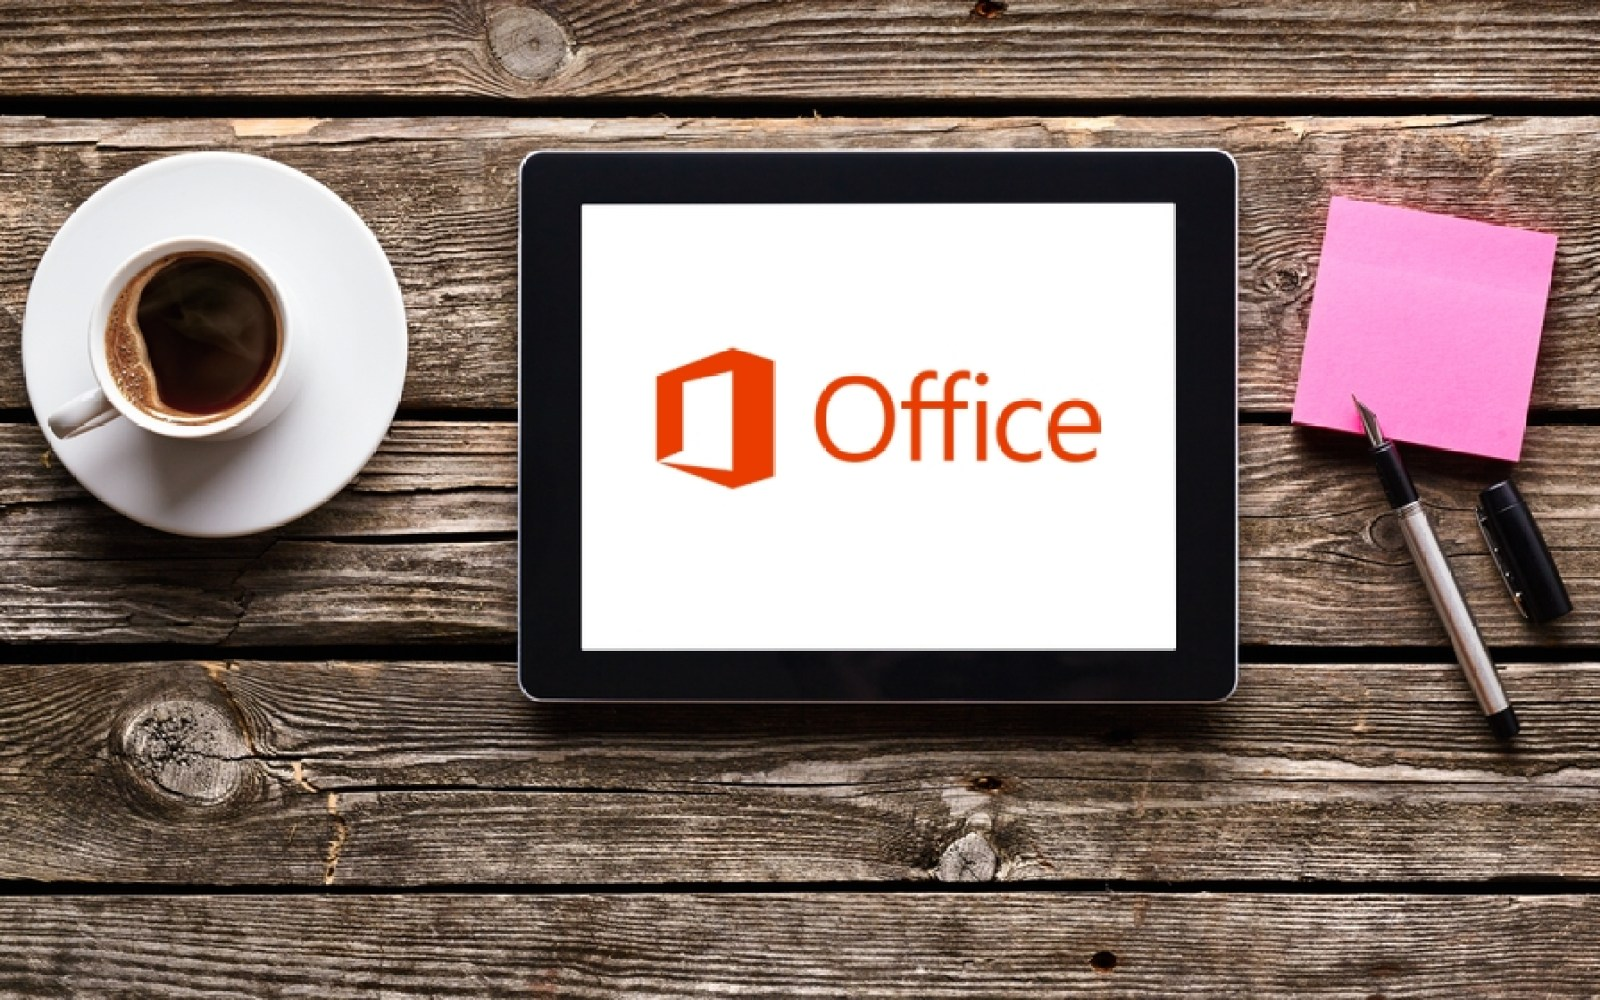 Review roundup: Is Office for iPad worth ninety-nine bucks a year?